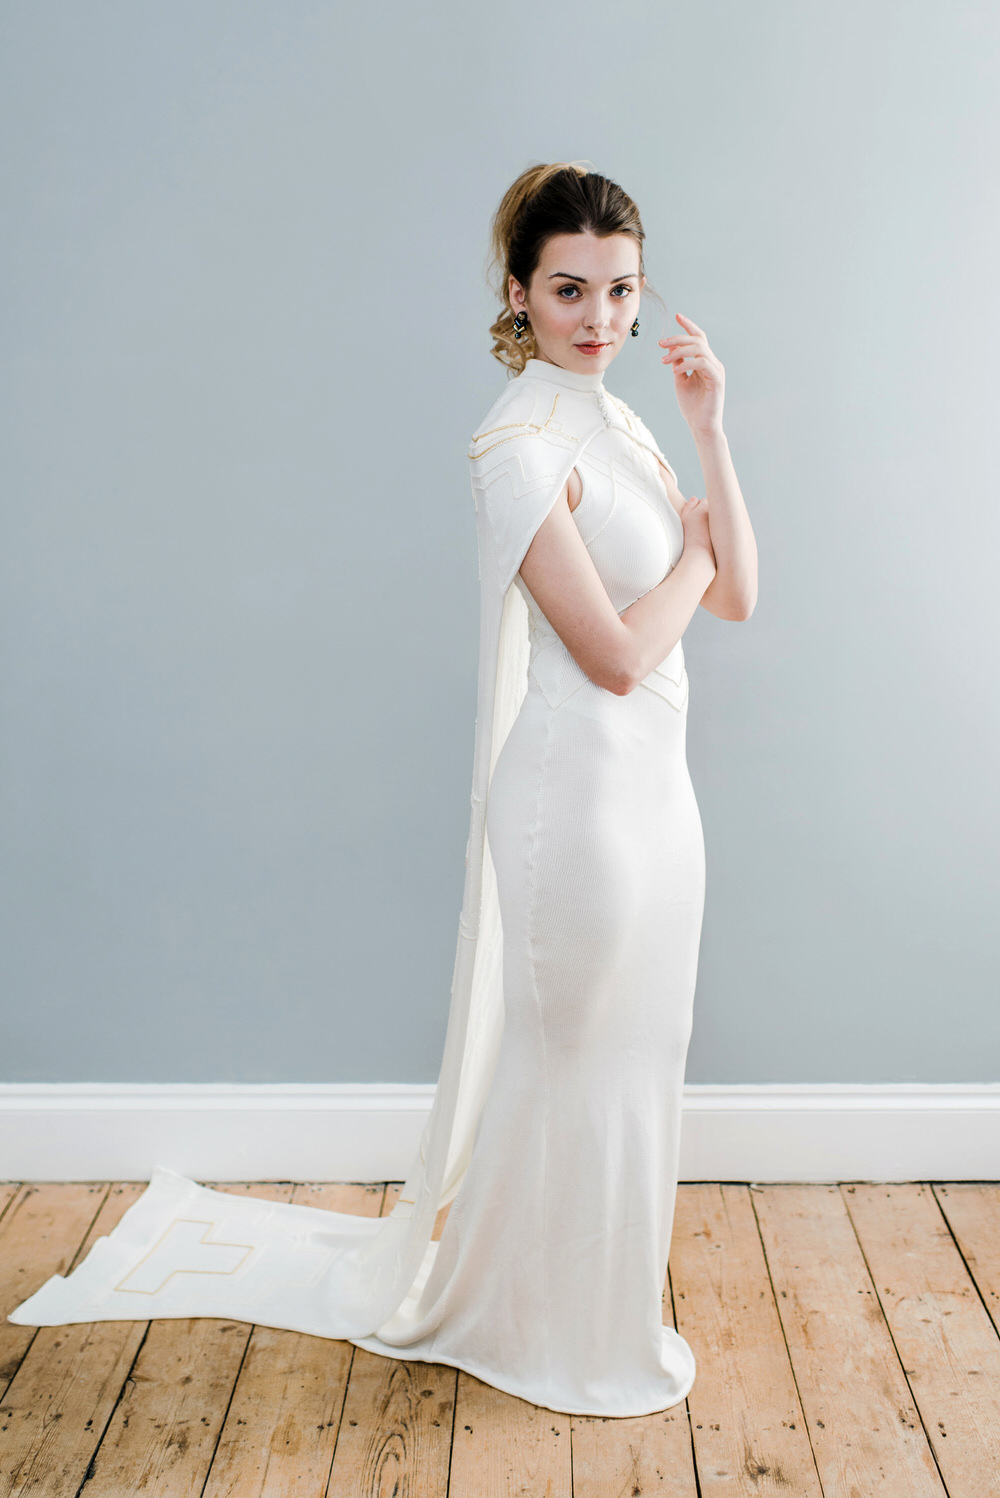 Bridal Cape How To Wear, Where To Shop, 2019 , 20 Bridal Trends